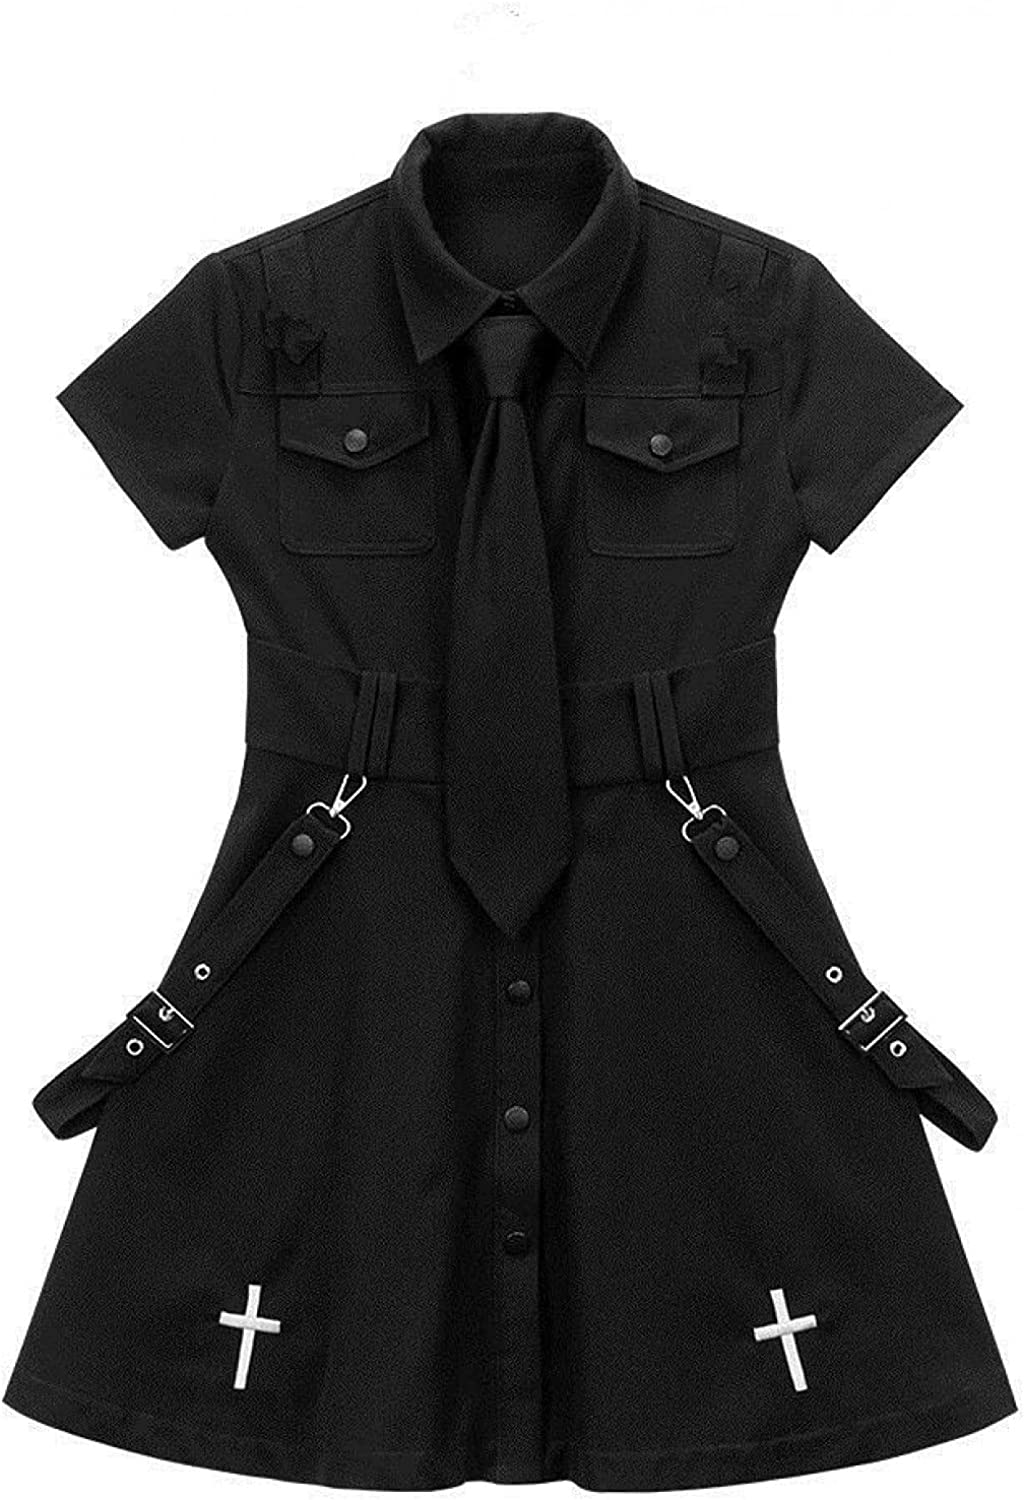 N A Gothic Dress Punk Goth We OFFer at Direct store cheap prices Mini Harajuku Sh Summer Black